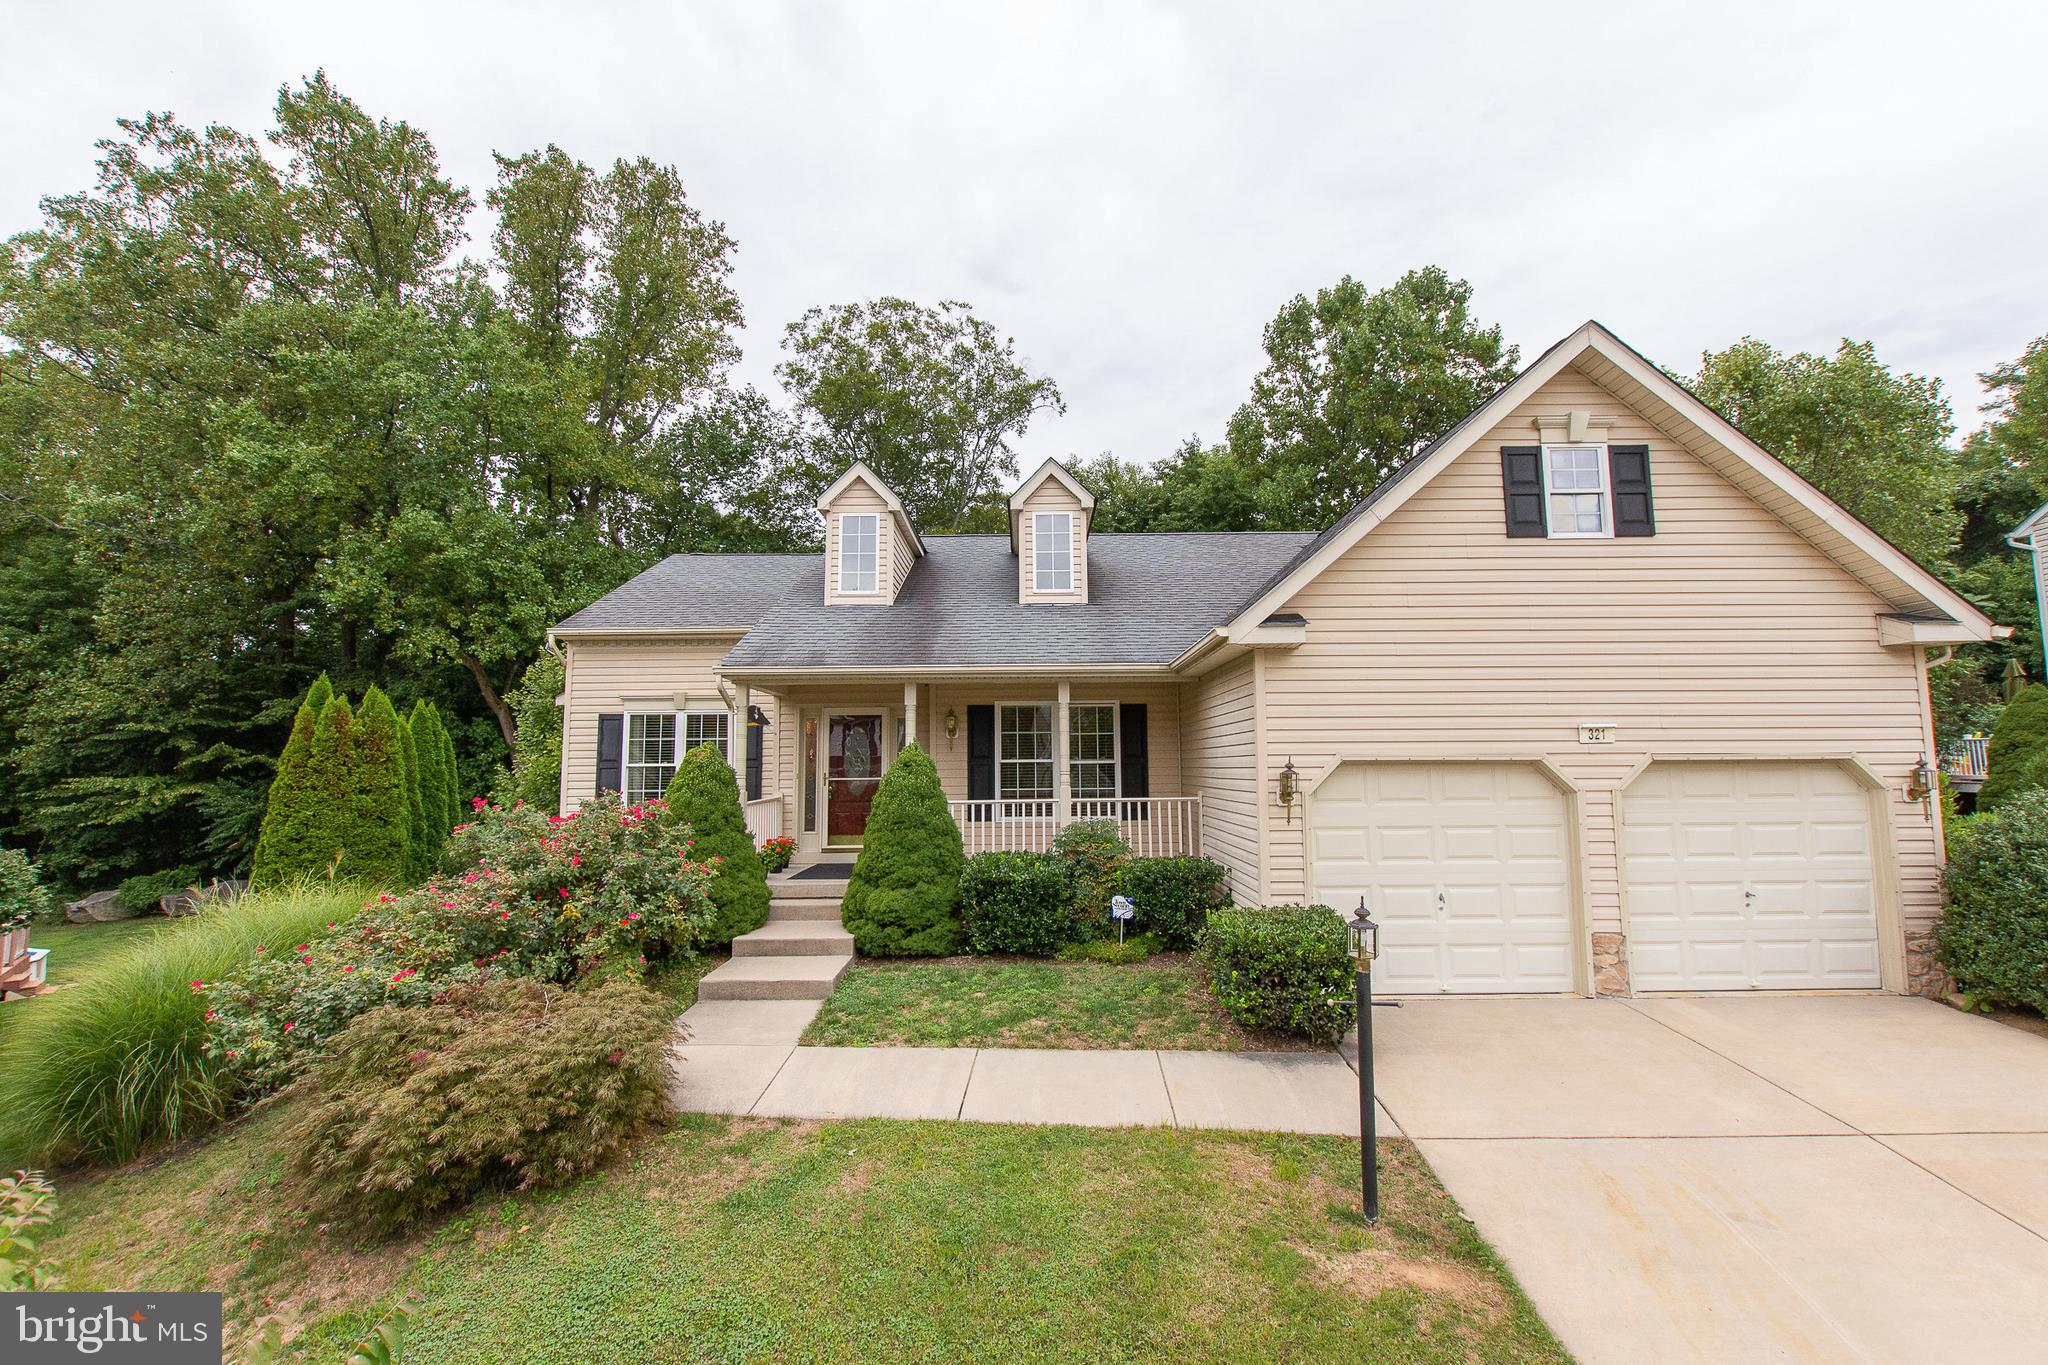 321 BEACON POINT DRIVE, PERRYVILLE, MD 21903